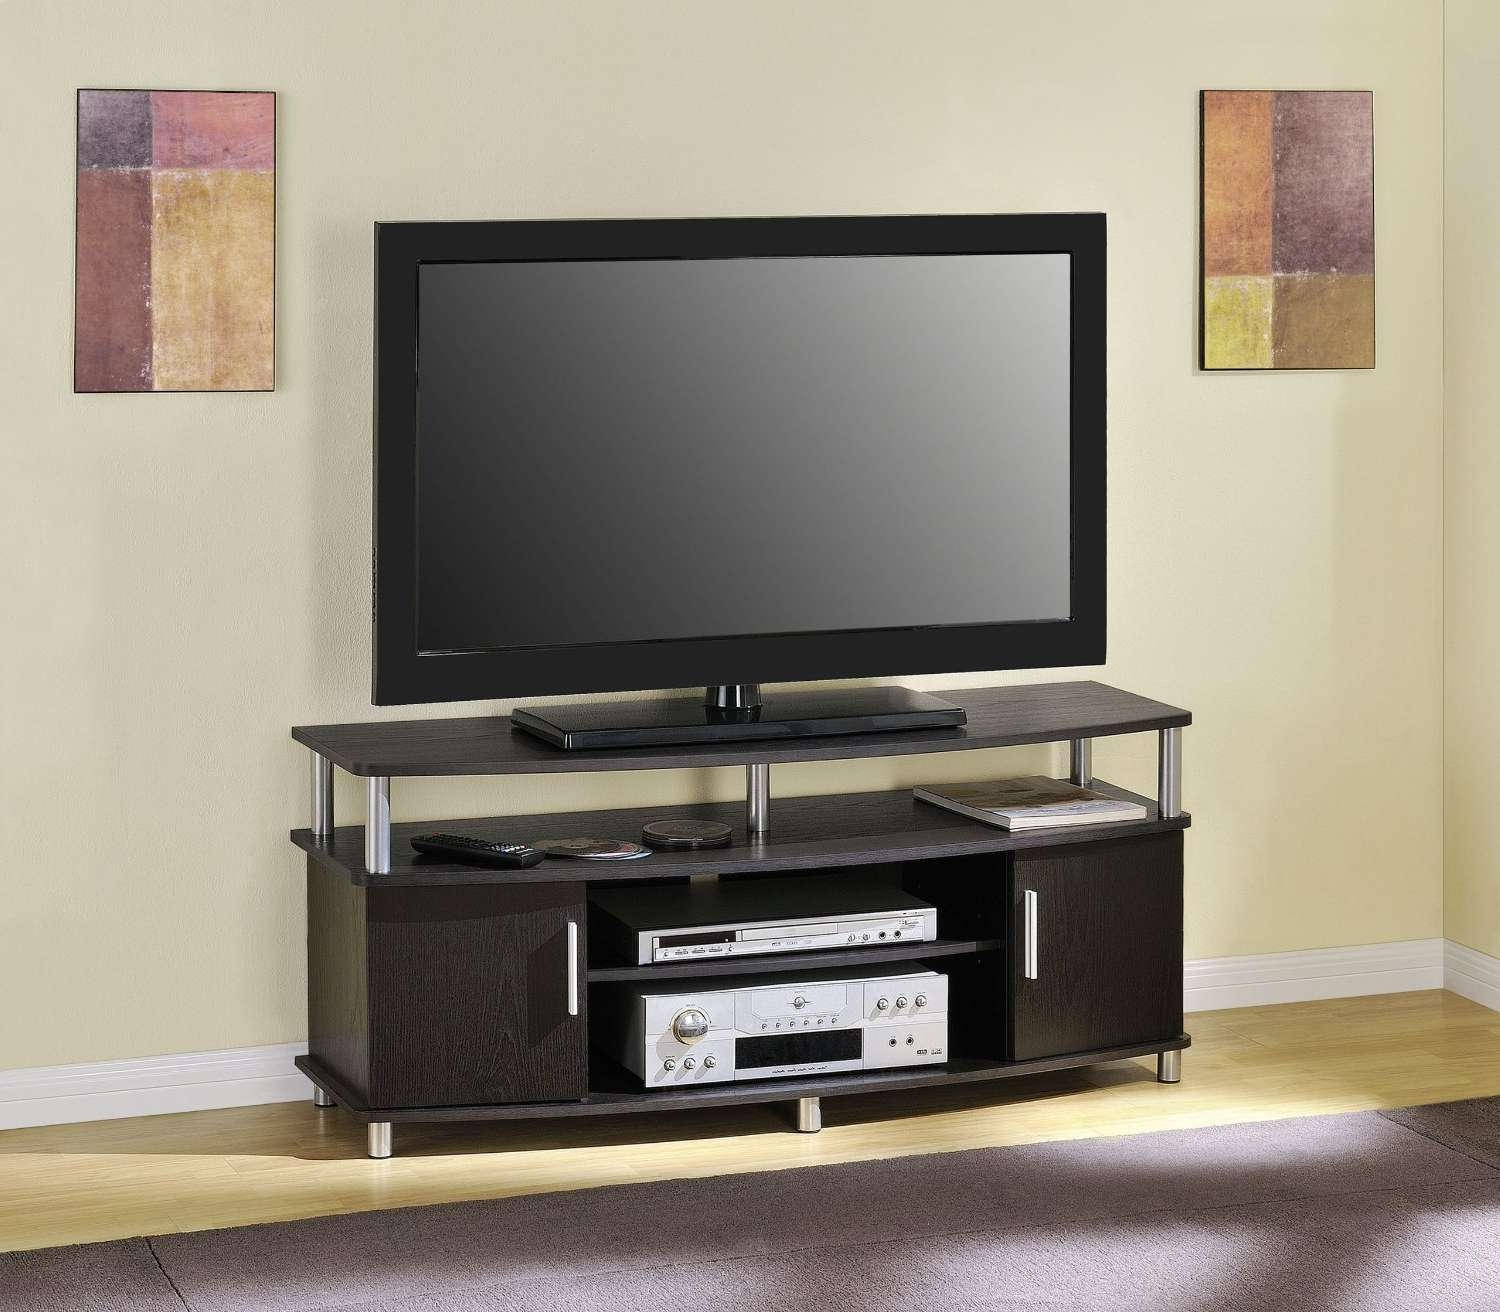 Good Tv Stands 55 Inch Flat Screen 61 On Interior Decor Home With With 61 Inch Tv Stands (View 8 of 15)